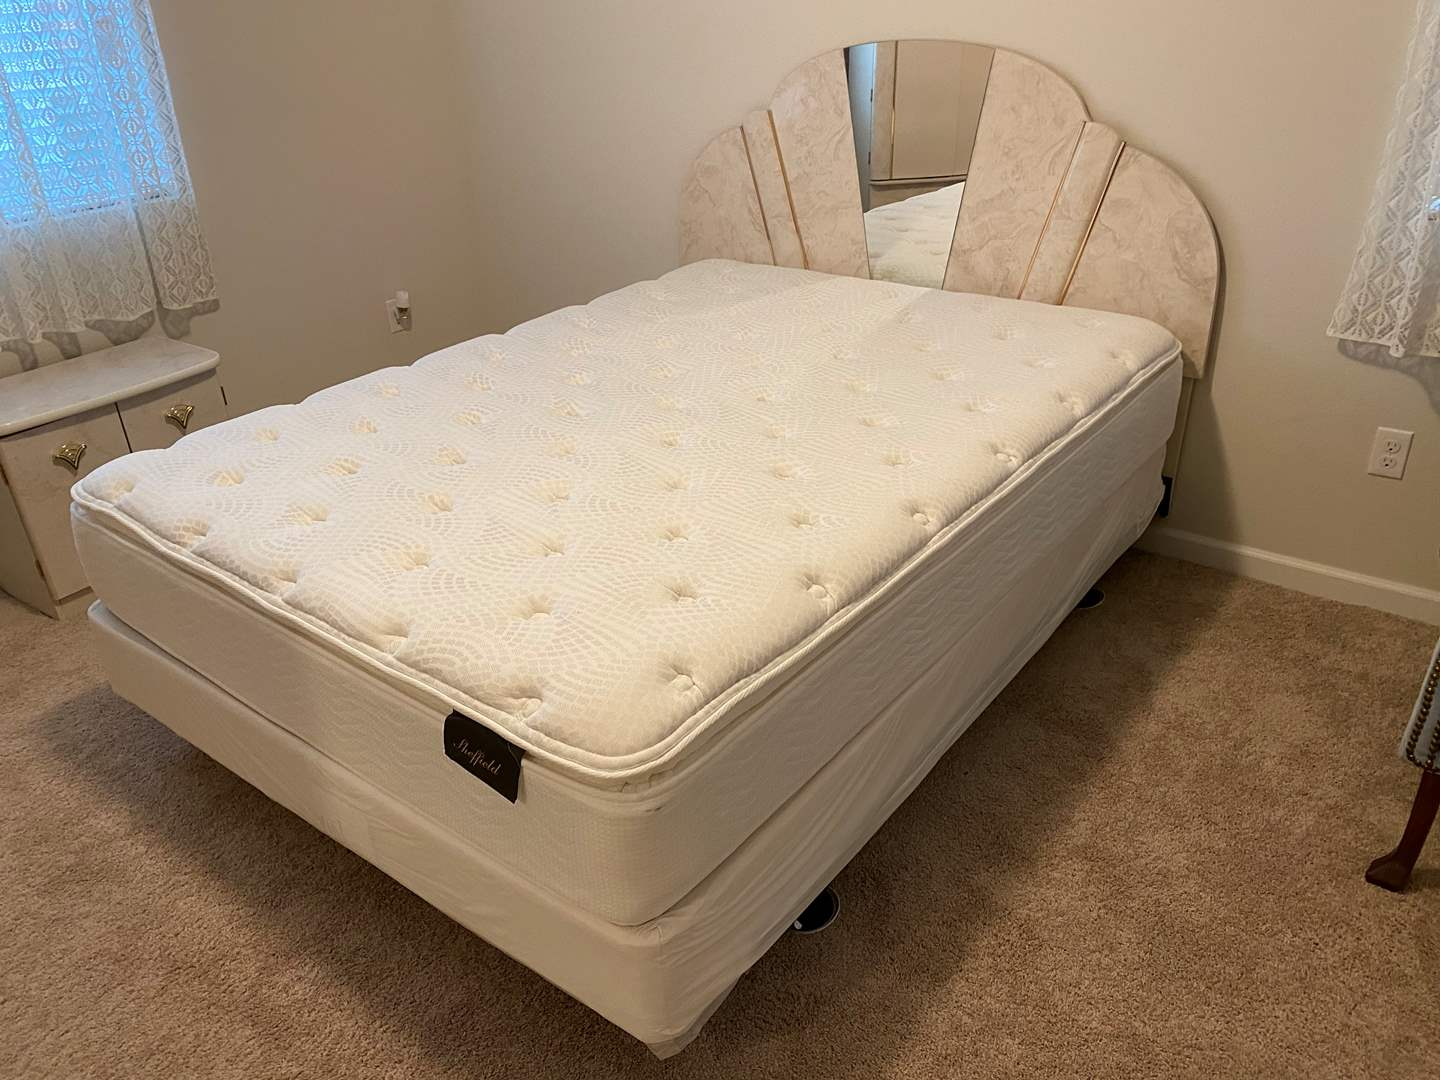 Lot # 324 - Nice Queen Size Bed Frame w/Lightly Used Sheffield Mattress & Box Spring (main image)